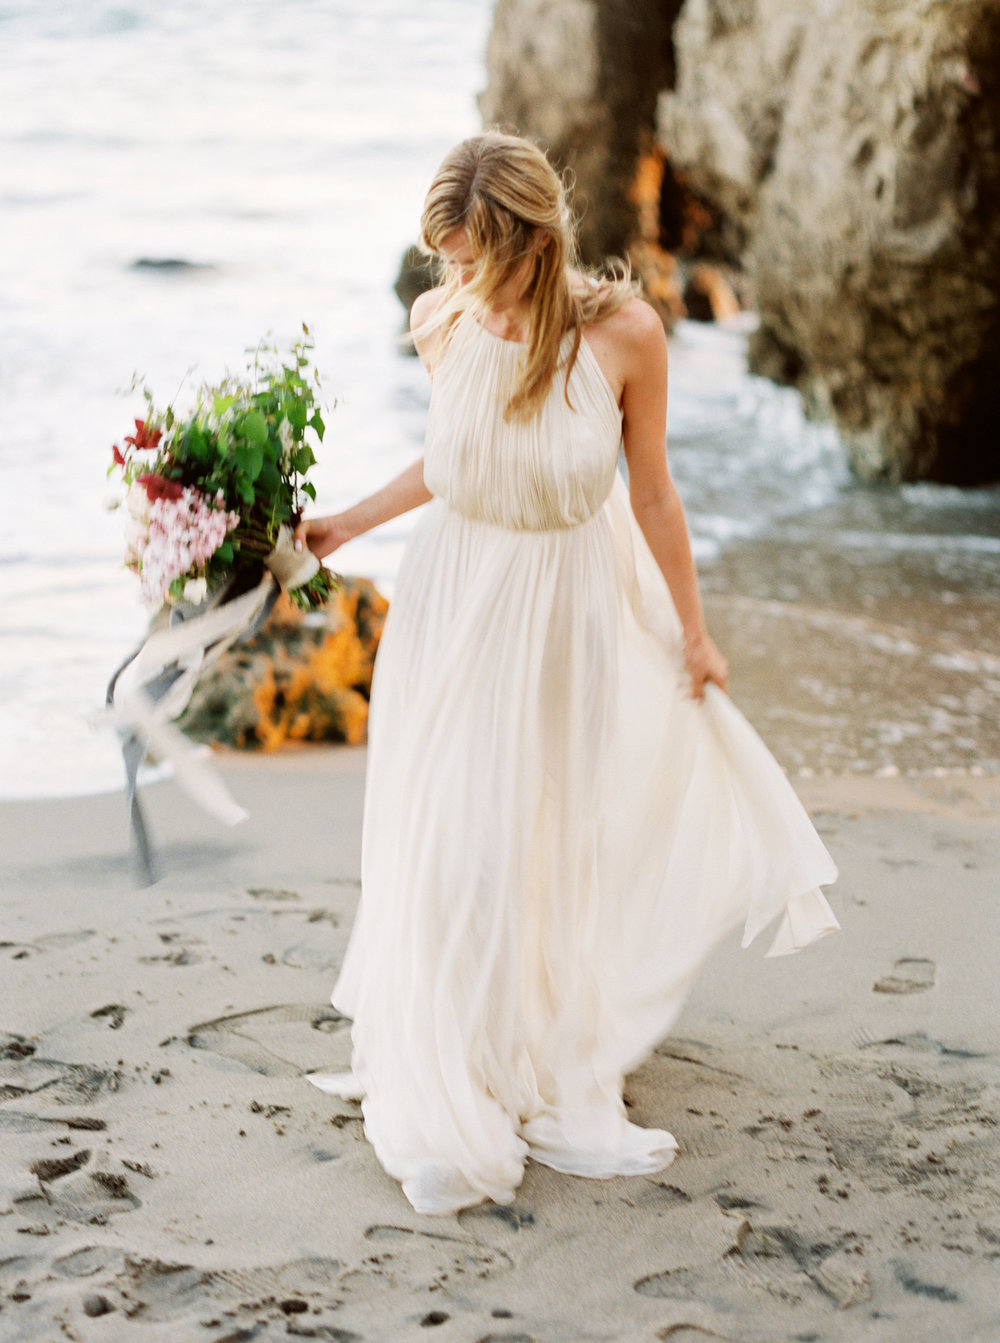 malibu_wedding_bride-74.jpg